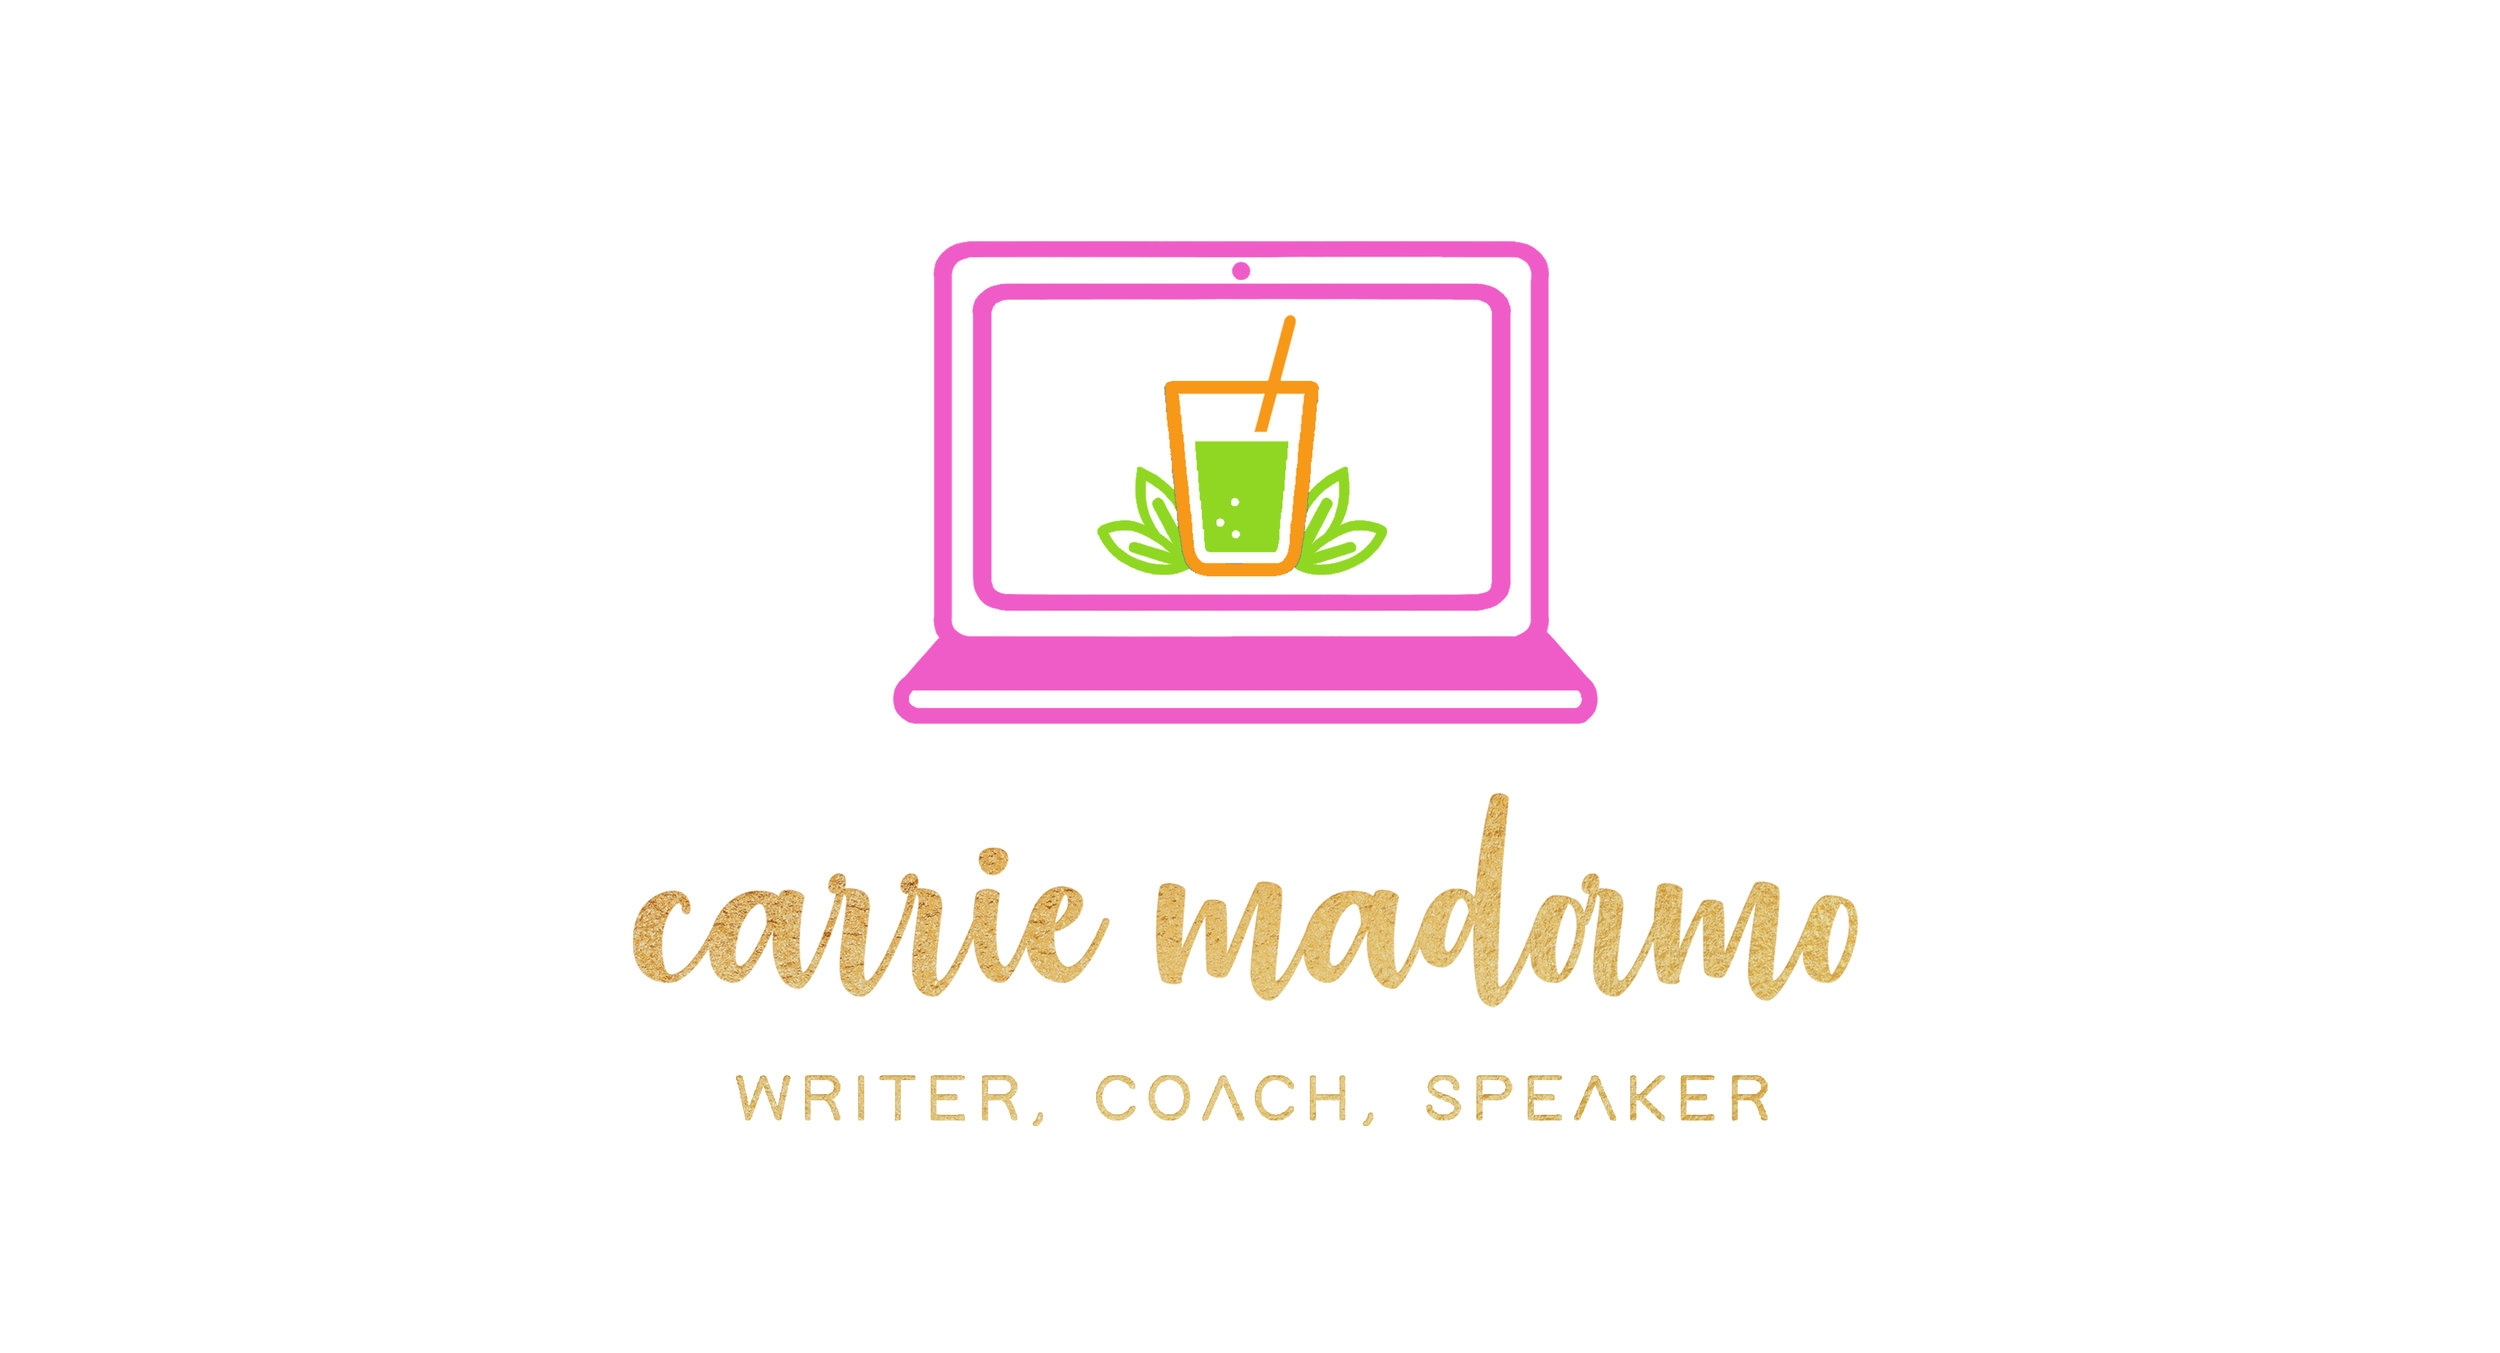 carrie_logo_mockup_color.jpg